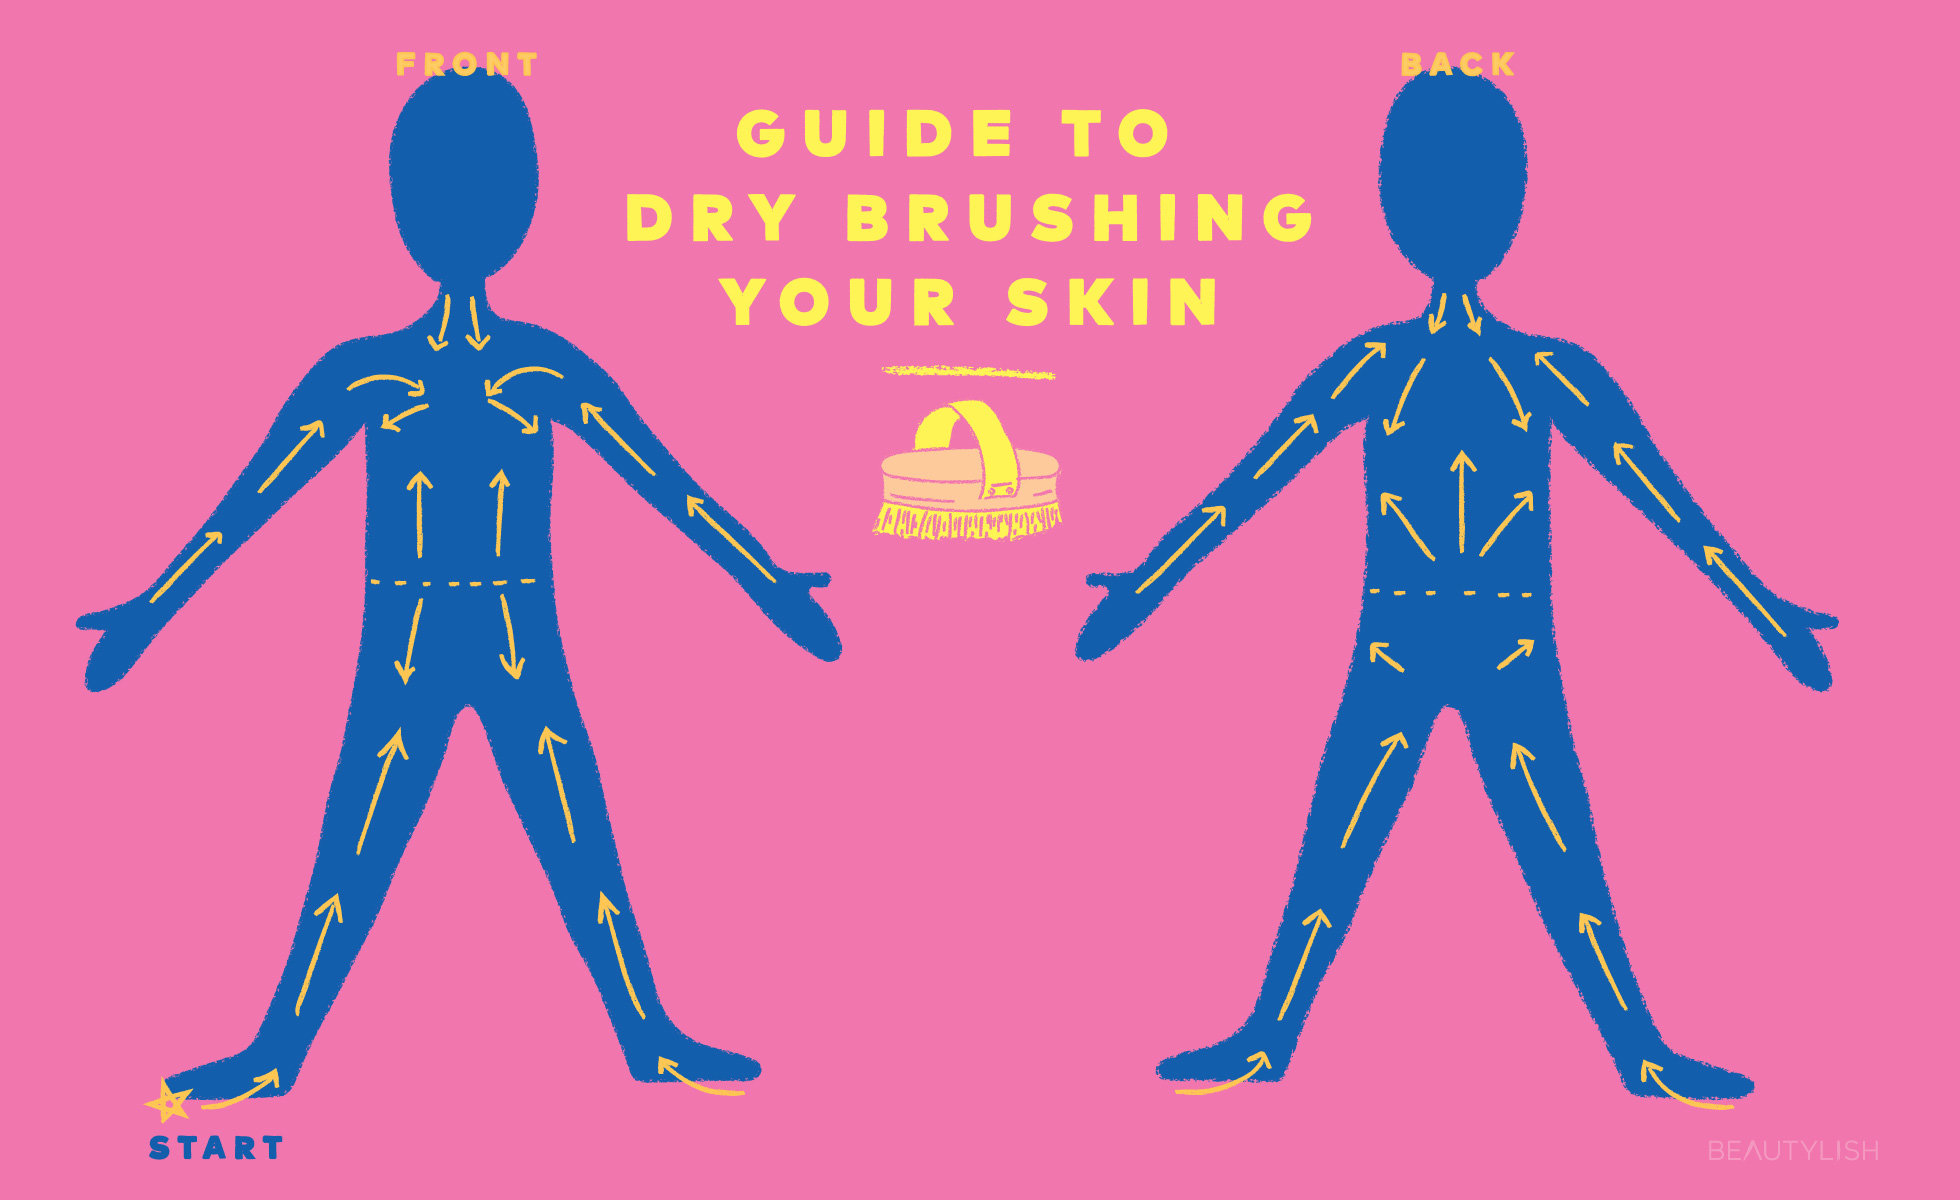 Guide to Dry Brushing Your Skin | Beautylish